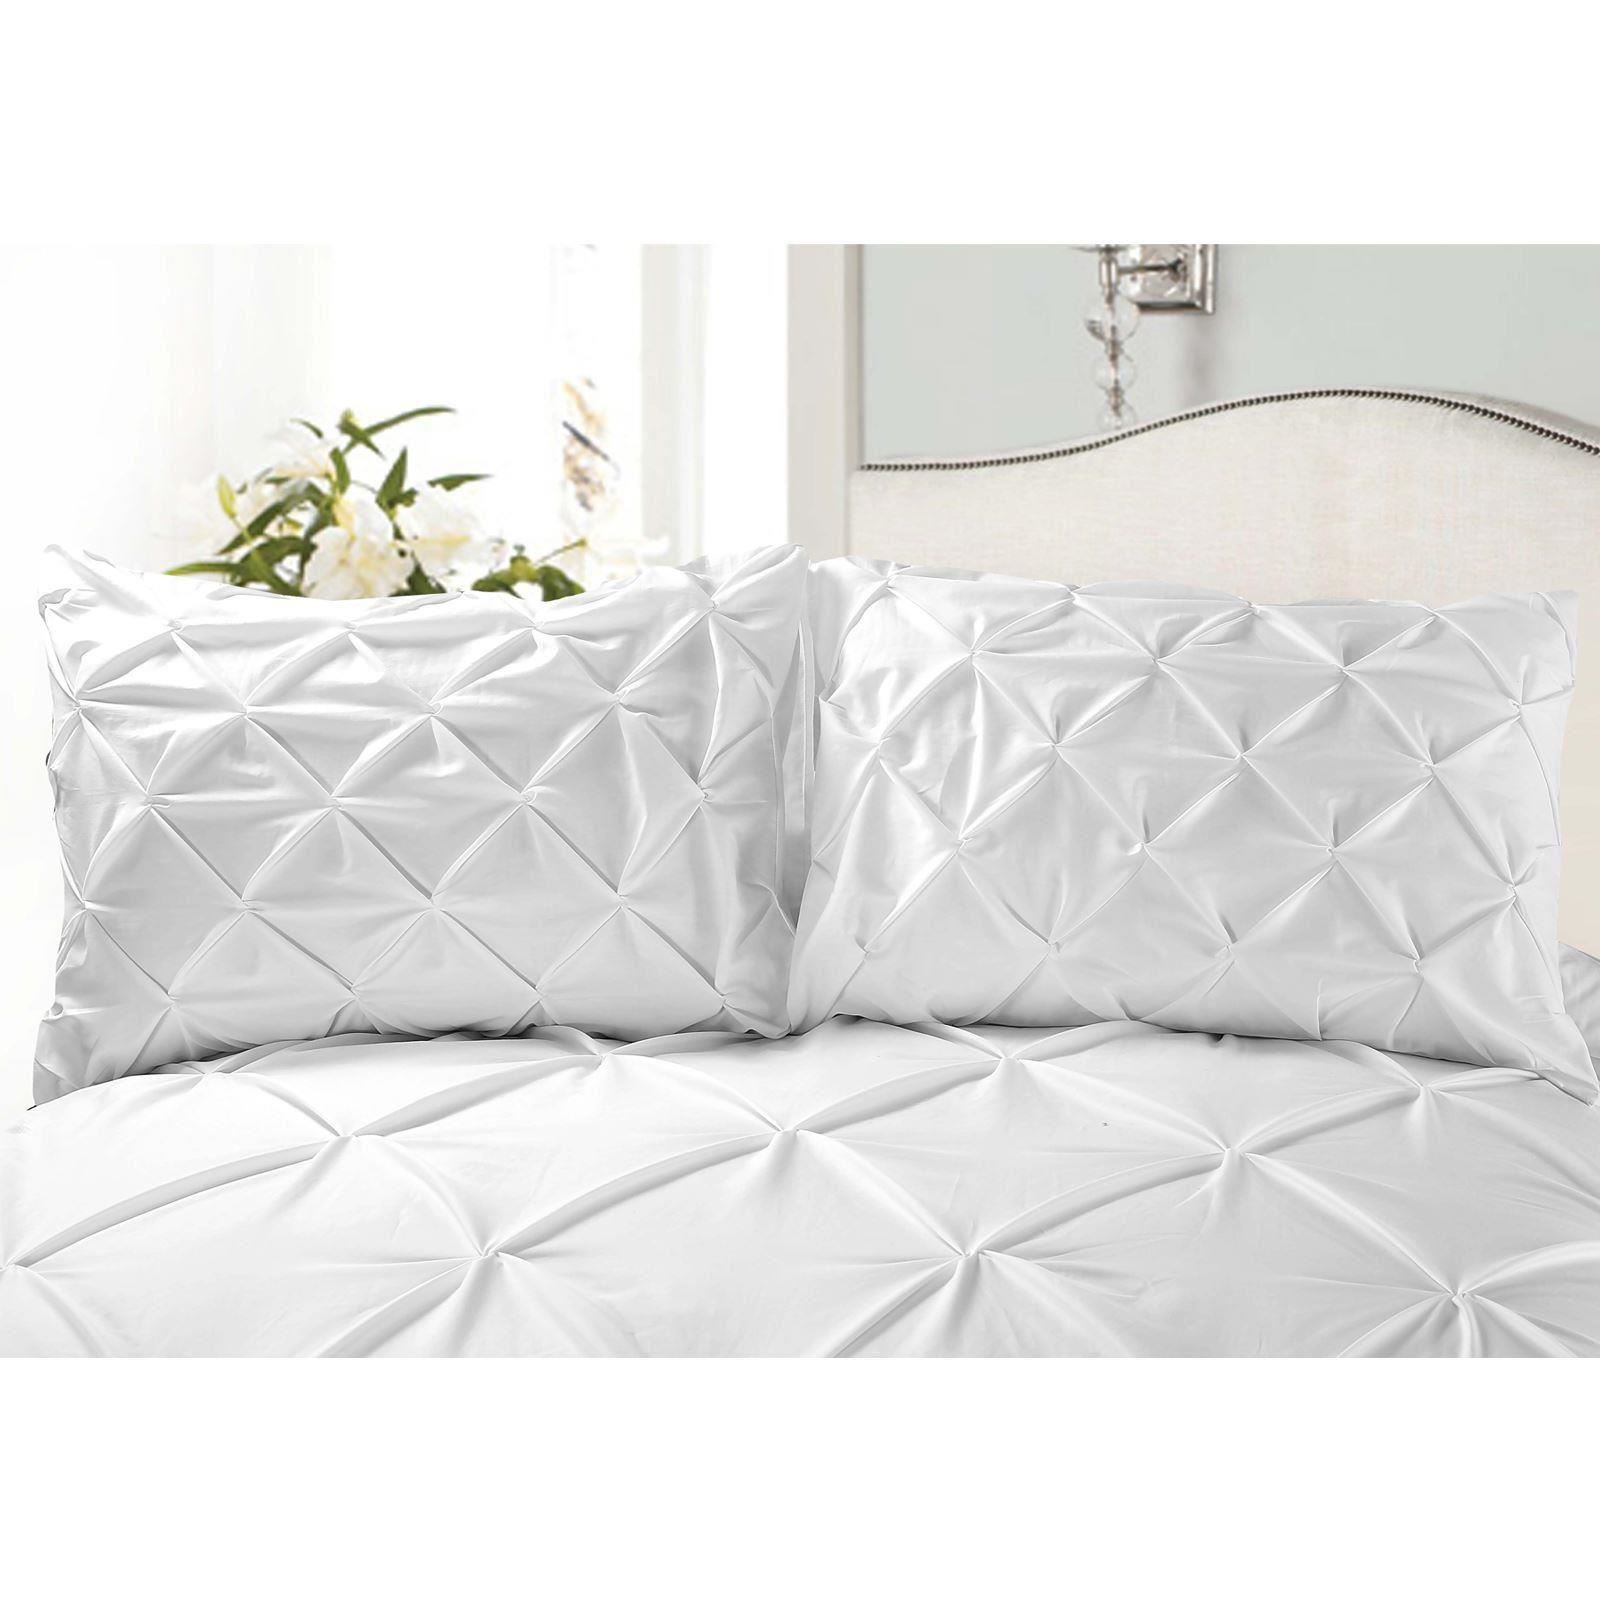 kitchen duvet cover dp pinch home collection cherry pleat queen pinched hill full set com amazon gray style design